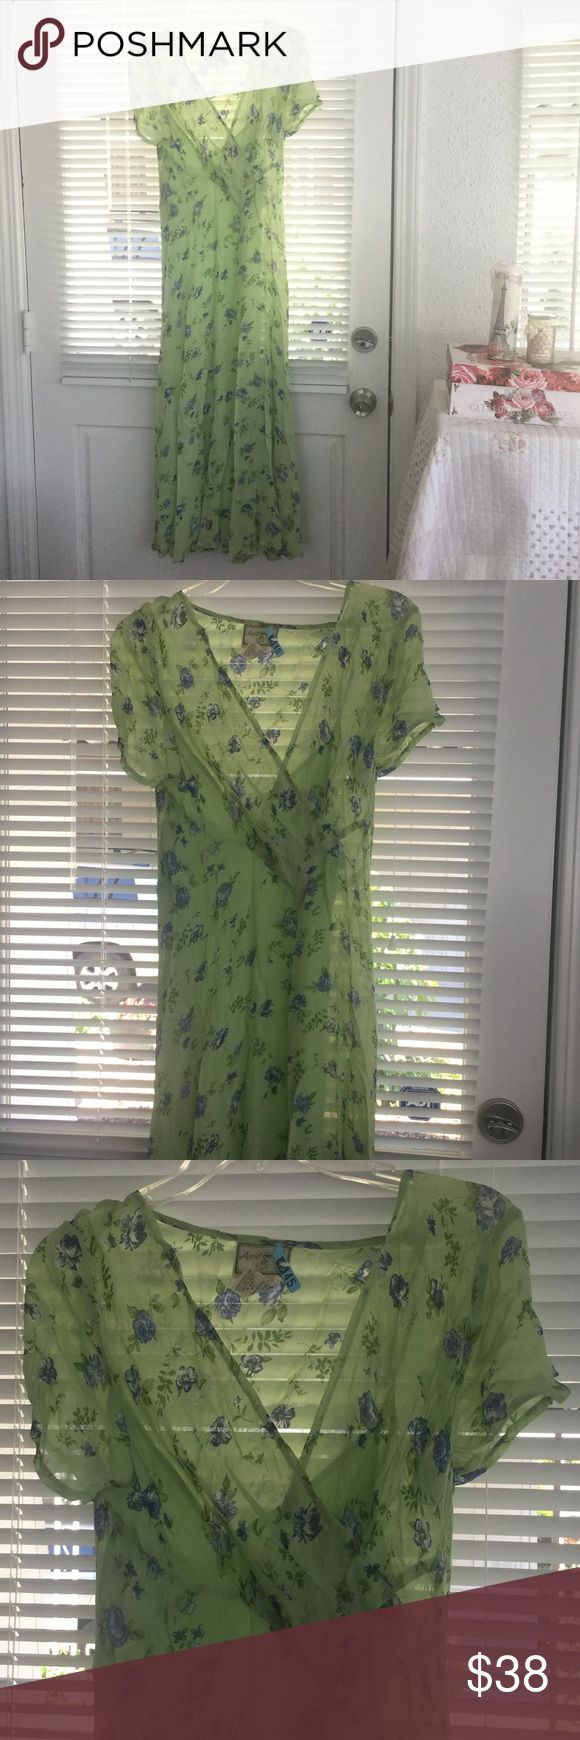 Lovely April Cornell mint green/lilac dress Sz S So perfect for Summer! Beautiful green with lilac flowers, has under slip. Very nice condition...has been dry-cleaned!  April Cornell Dresses Midi